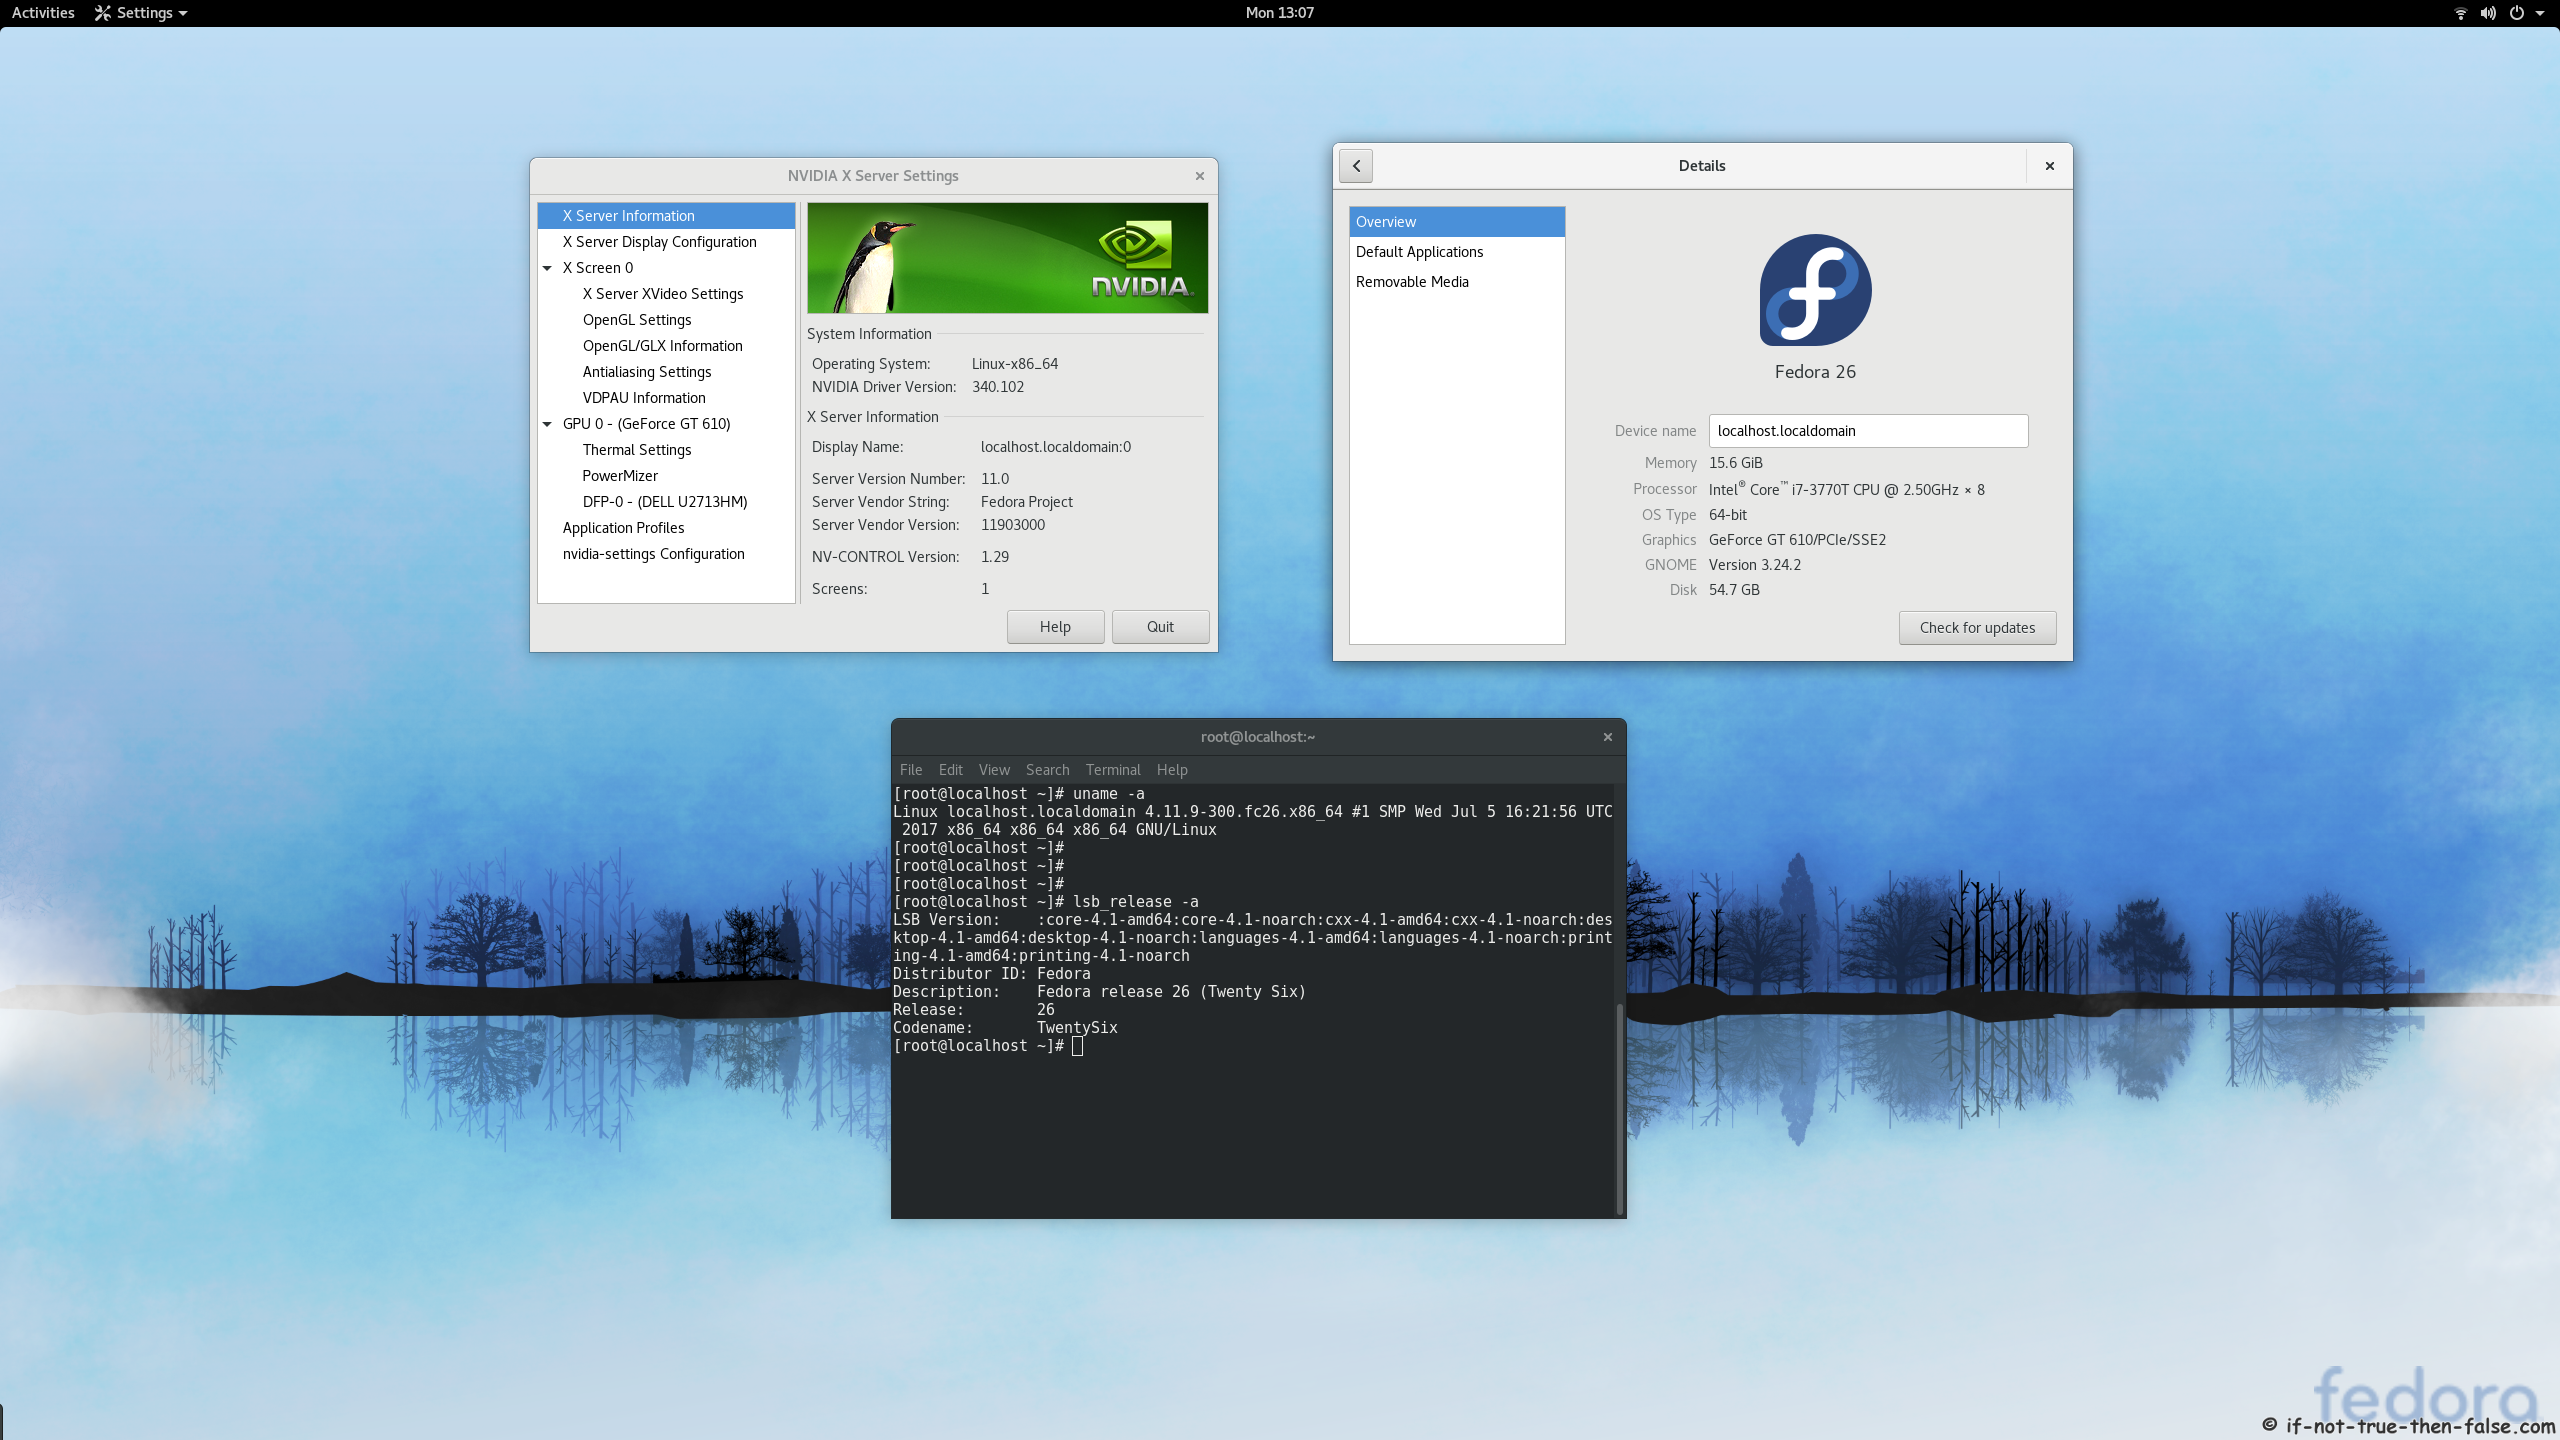 nVidia 340.102 drivers on Fedora 26 Gnome 3.24.2 with Kernel 4.11